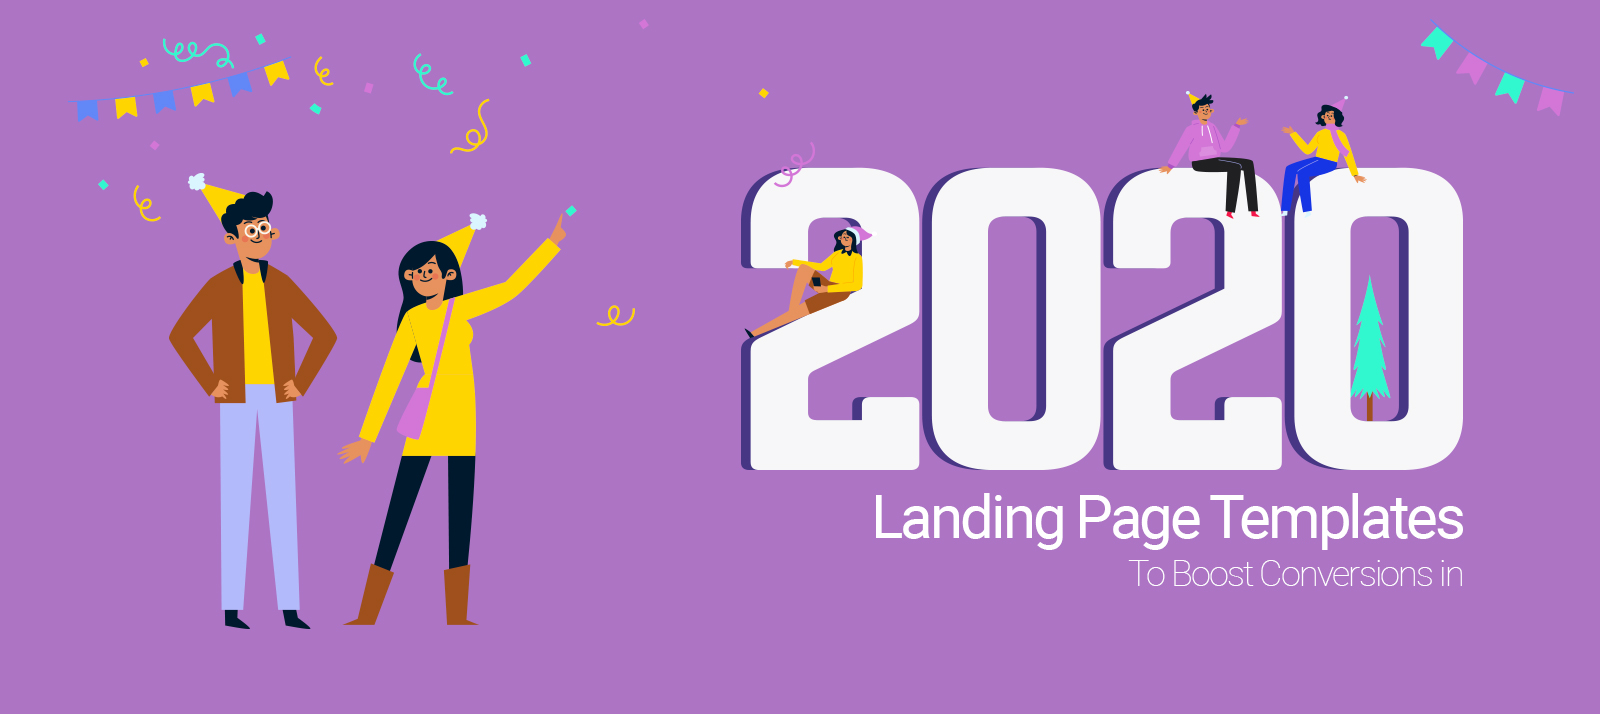 Bootstrap App Landing Page Templates To Boost Conversions in 2020